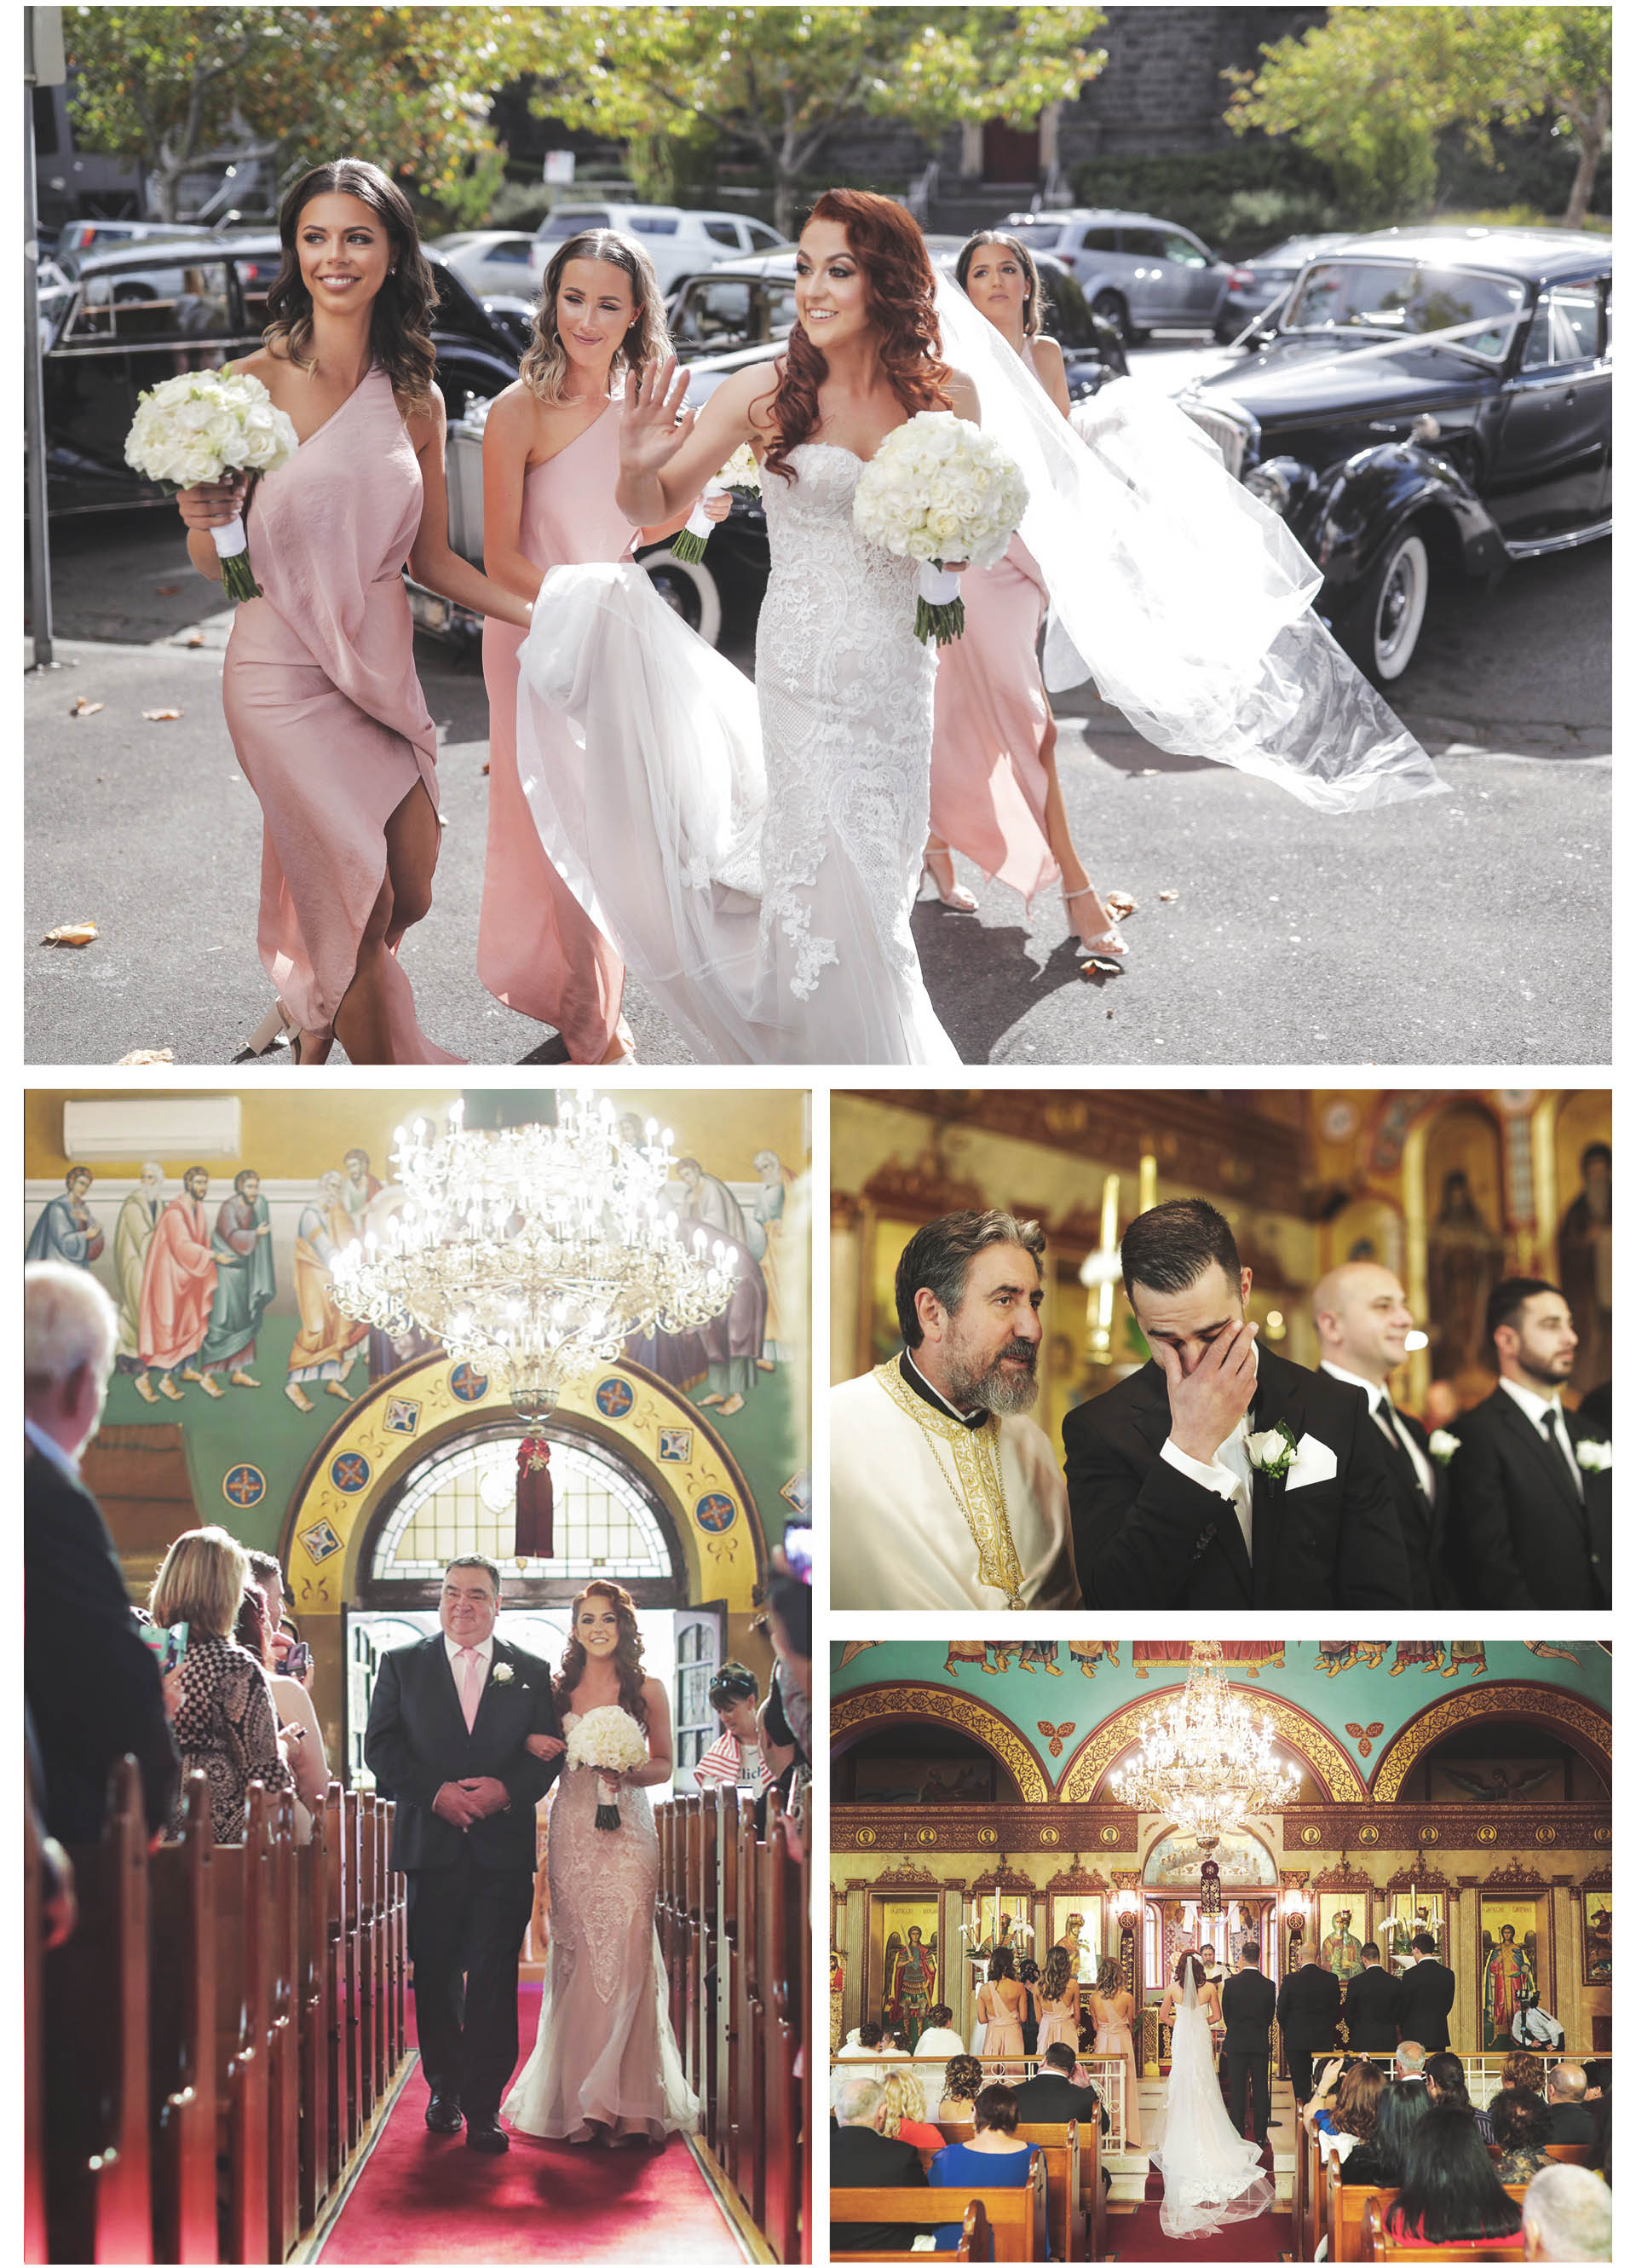 The bride and groom arrived at the traditional greek ceremony in the greek orthodox church